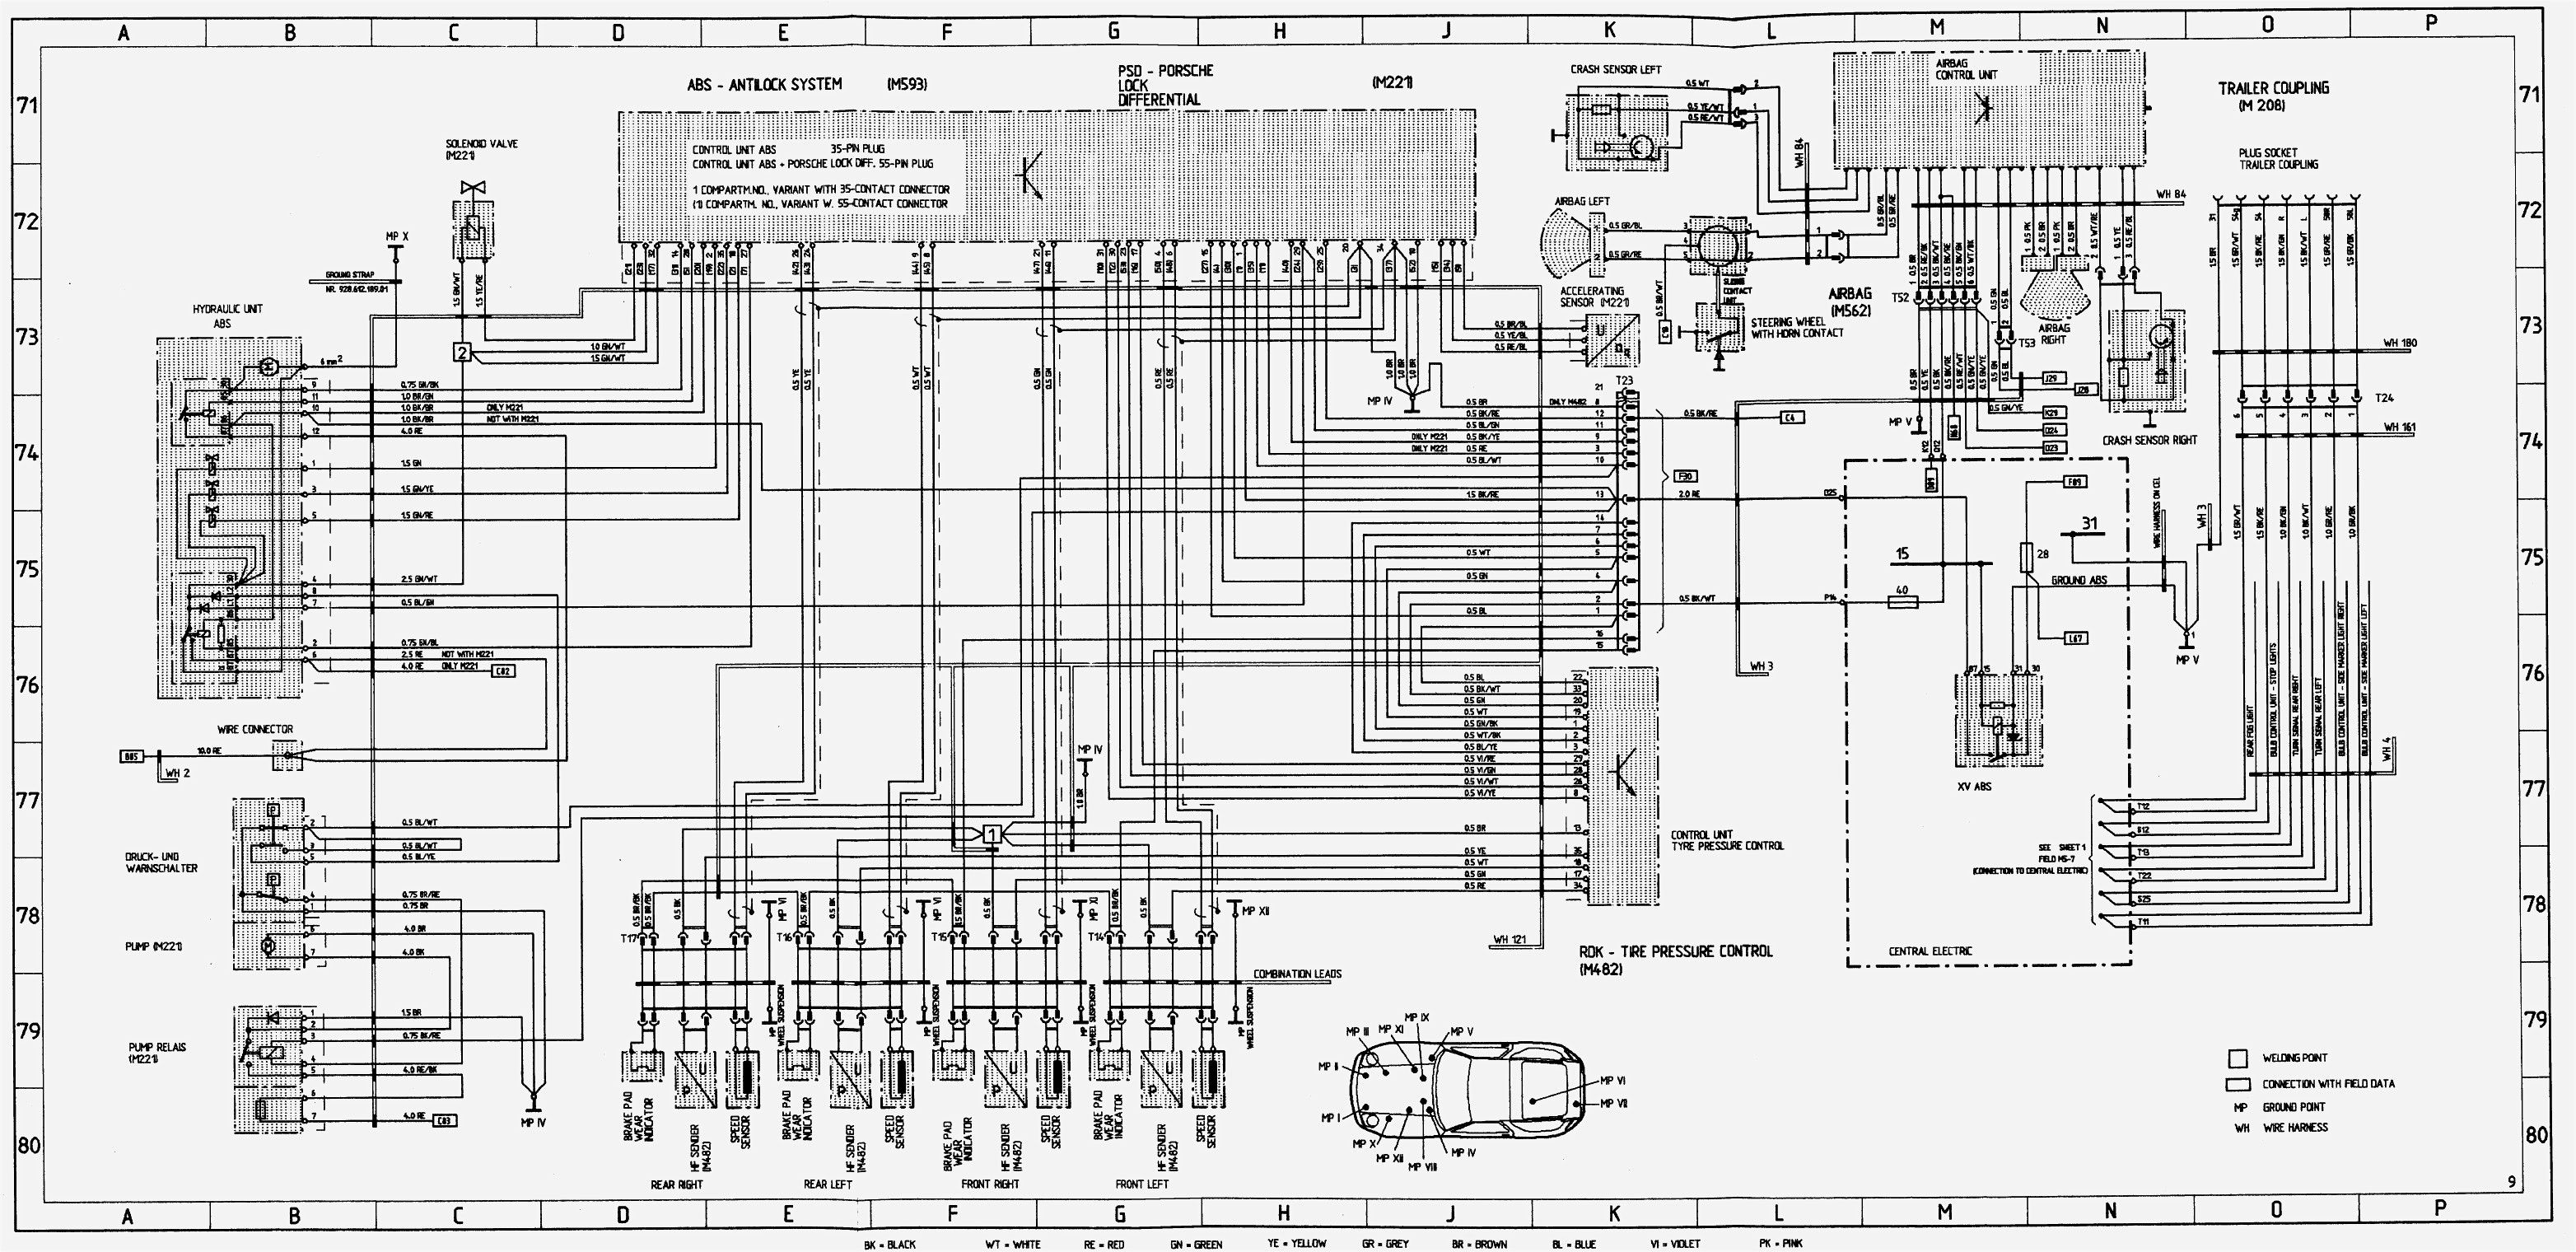 Bmw E39 Dsc Wiring Diagram Free Download Diagrams Schematics Lively E36 M3 Bmw